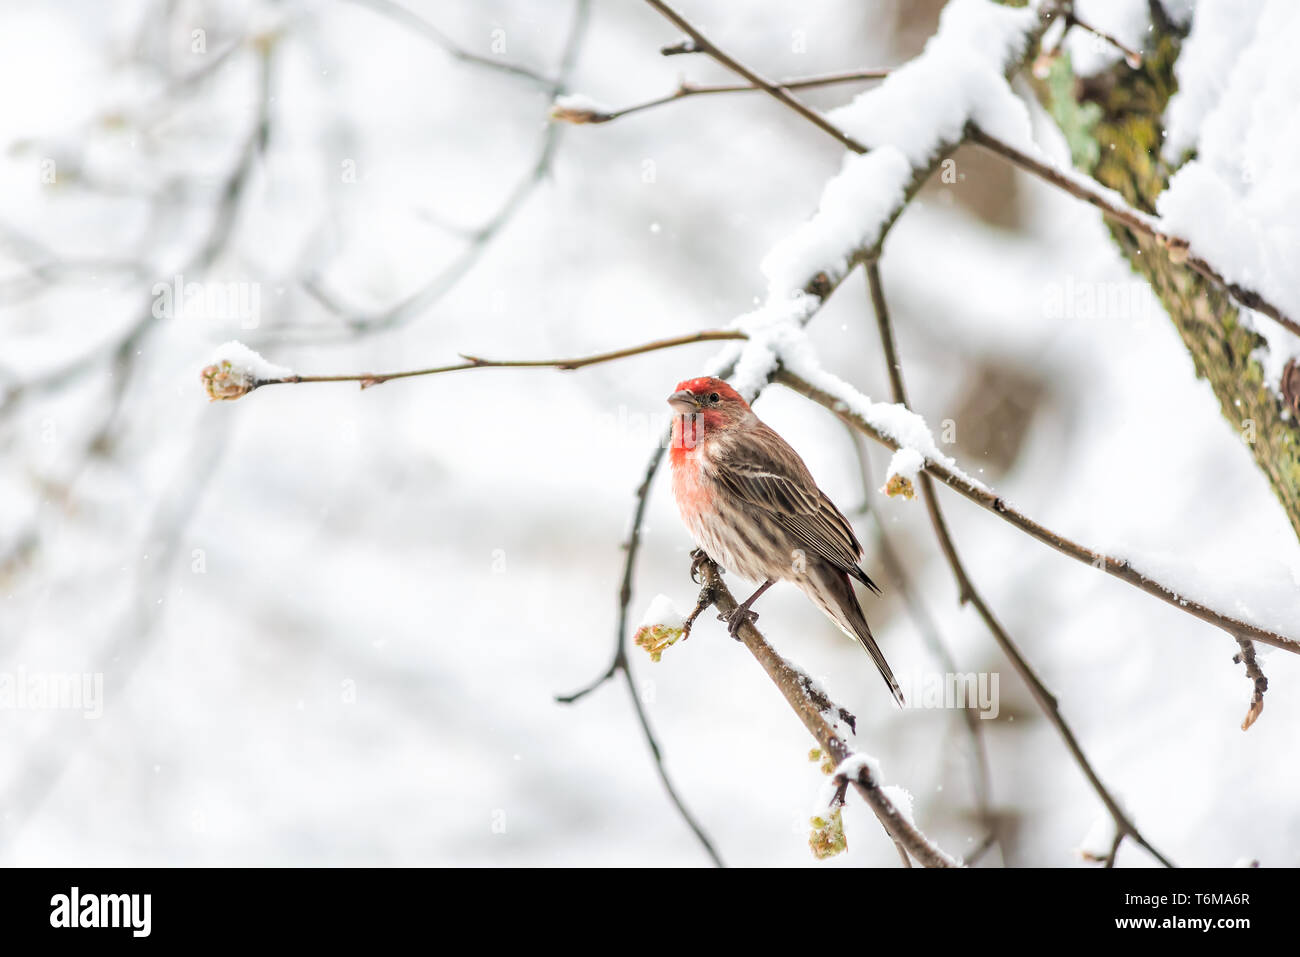 One male red house finch Haemorhous mexicanus bird perched on tree branch during winter spring snow in northern Virginia - Stock Image